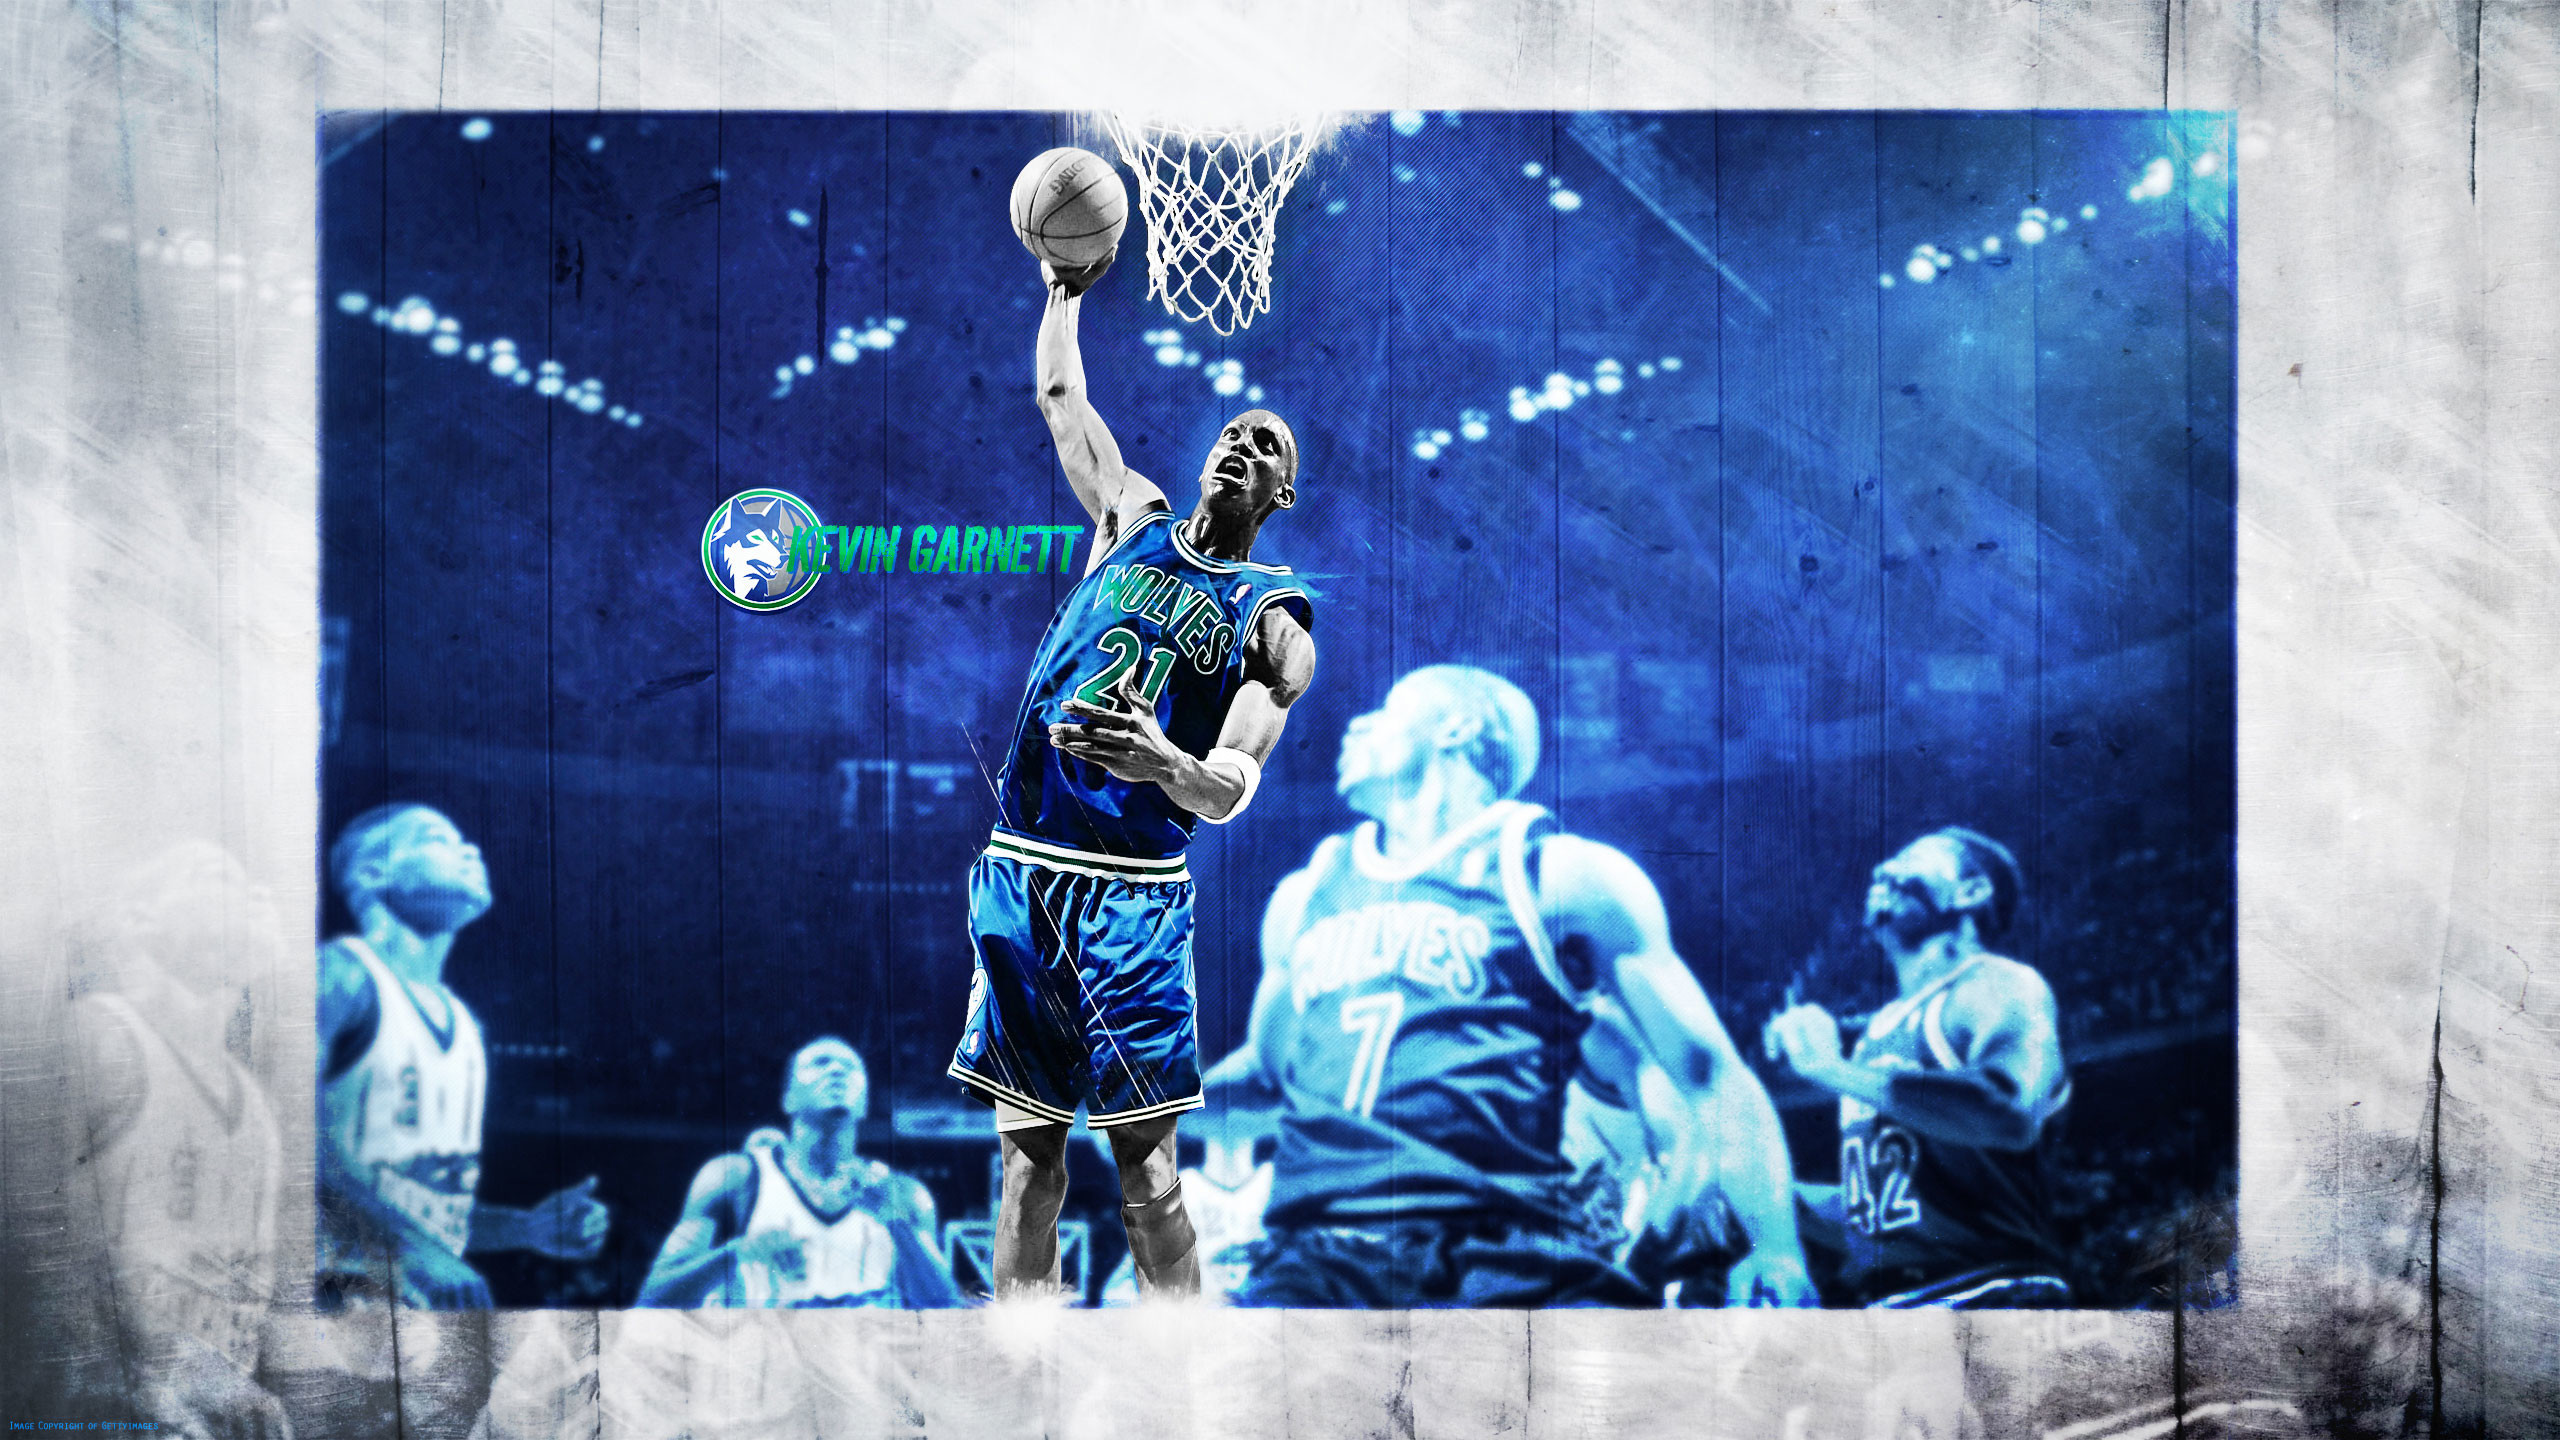 2560x1440 Minnesota Timberwolves Wallpapers Basketball Wallpapers at